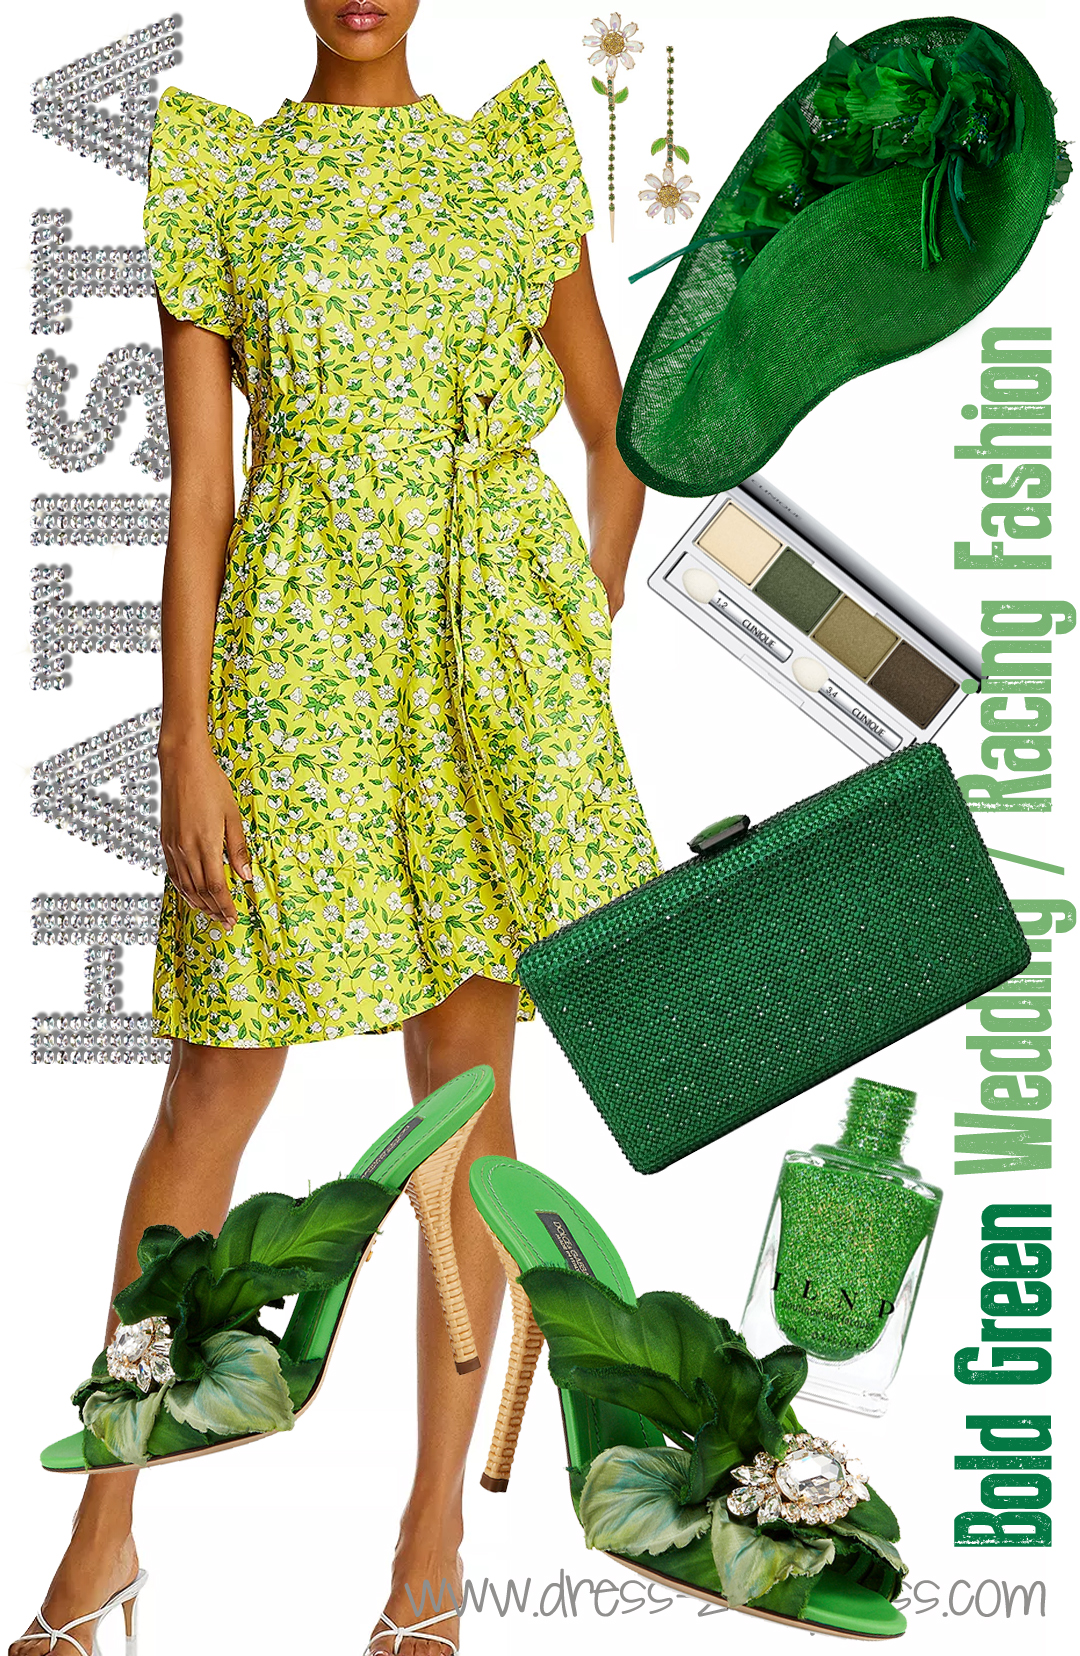 How to Wear Green 2020. Floral outfits for Kentucky Derby 2021. What to wear for the Kentucky Derby 2021. How to wear Green. Green outfit ideas 2021. What to wear for a Summer wedding. Green Floral Kentucky Derby Outfit 2021. What to wear for a day at the Races 2021.